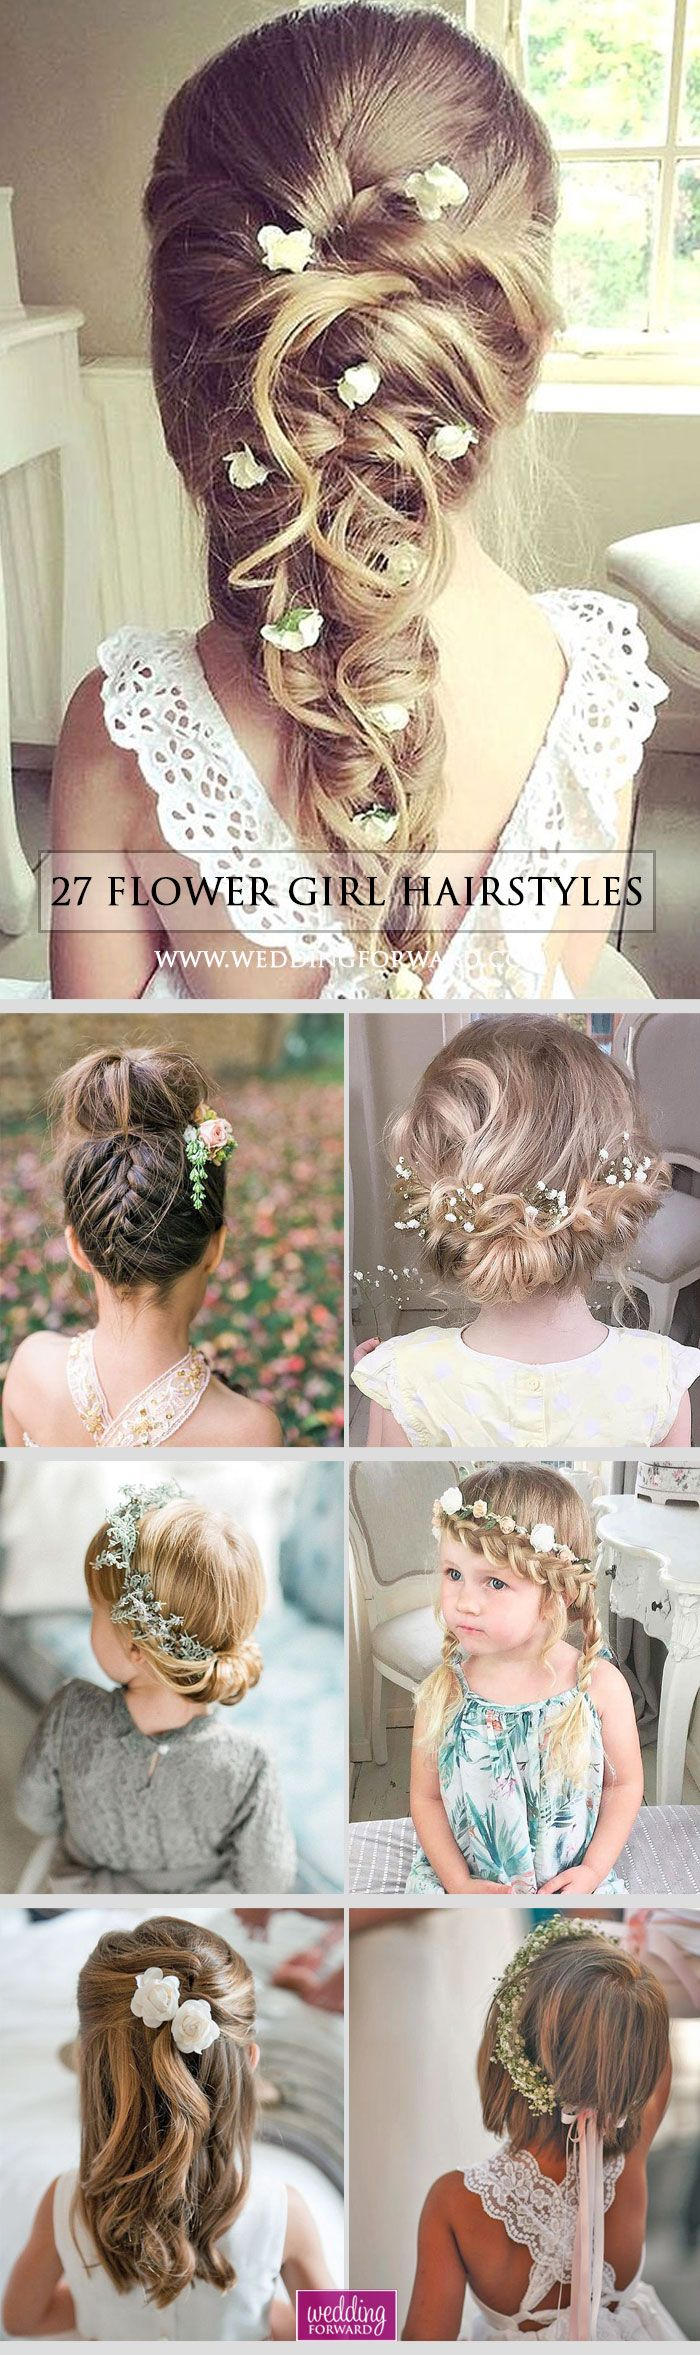 Miraculous 1000 Ideas About Cute Girls Hairstyles On Pinterest Girl Short Hairstyles For Black Women Fulllsitofus